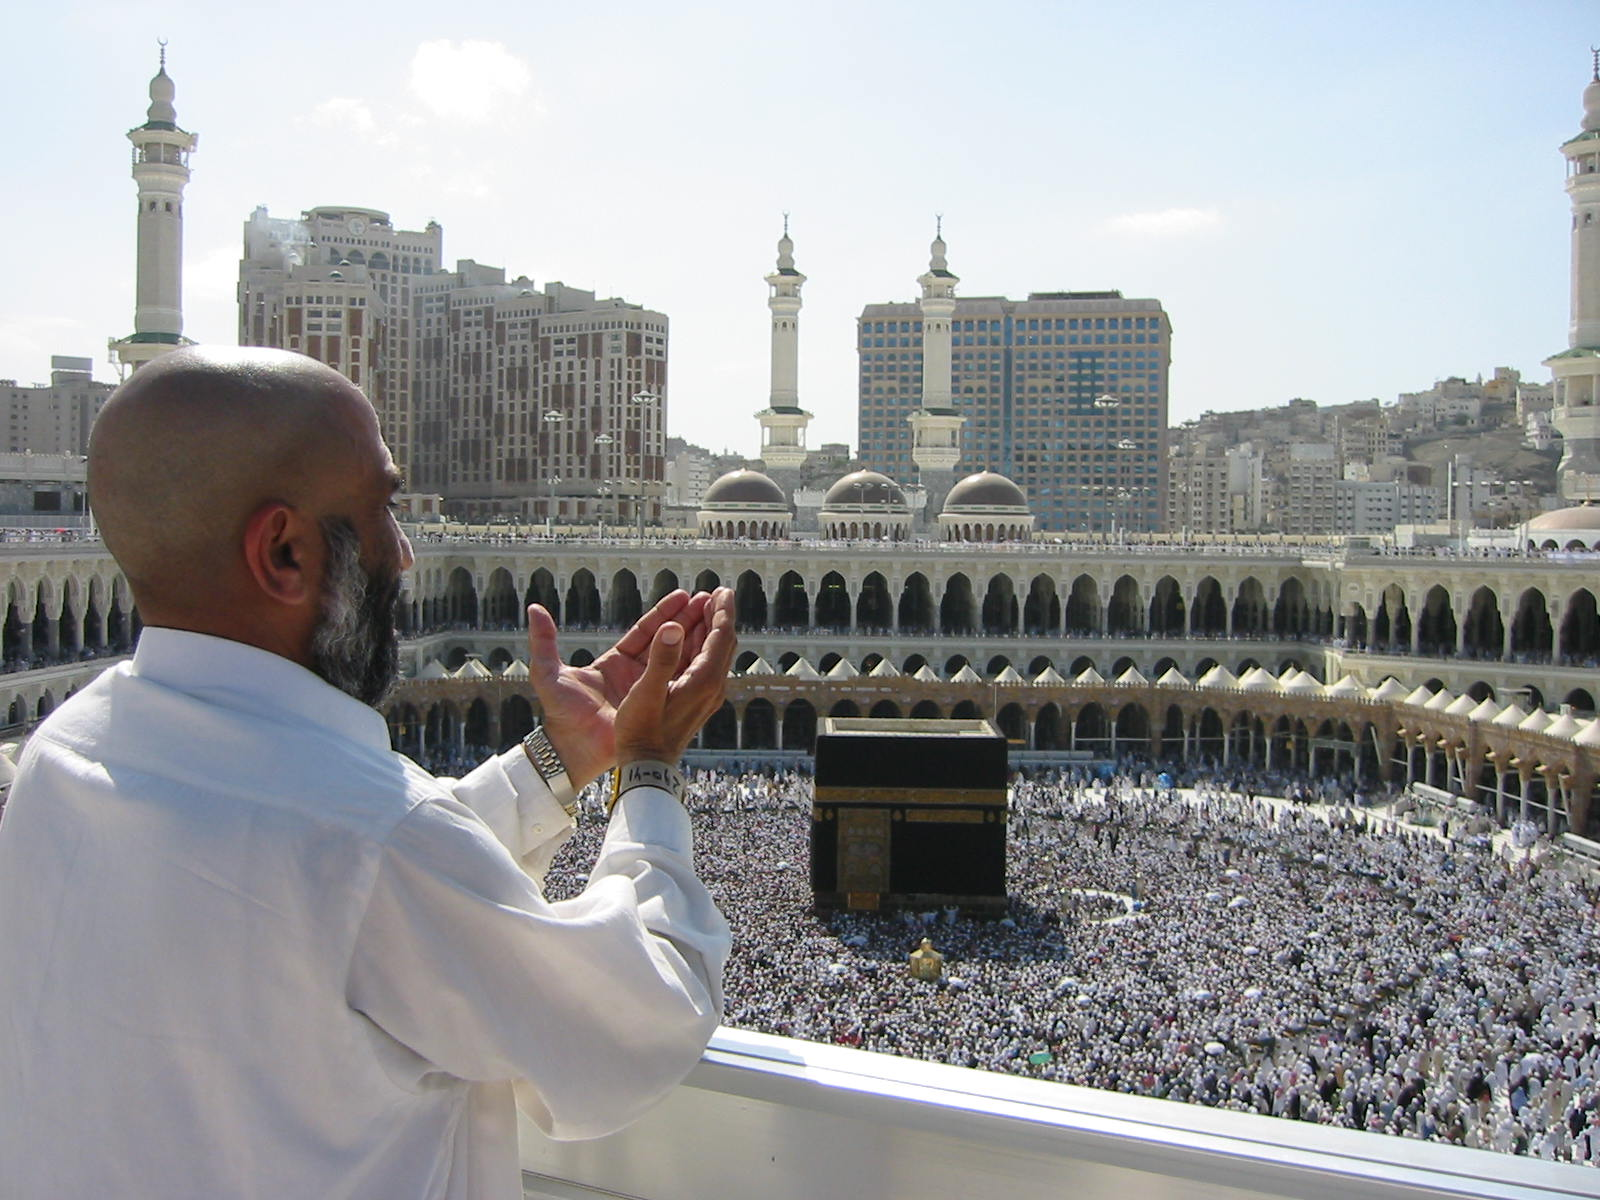 Supplicating_Pilgrim_at_Masjid_Al_Haram._Mecca,_Saudi_Arabia